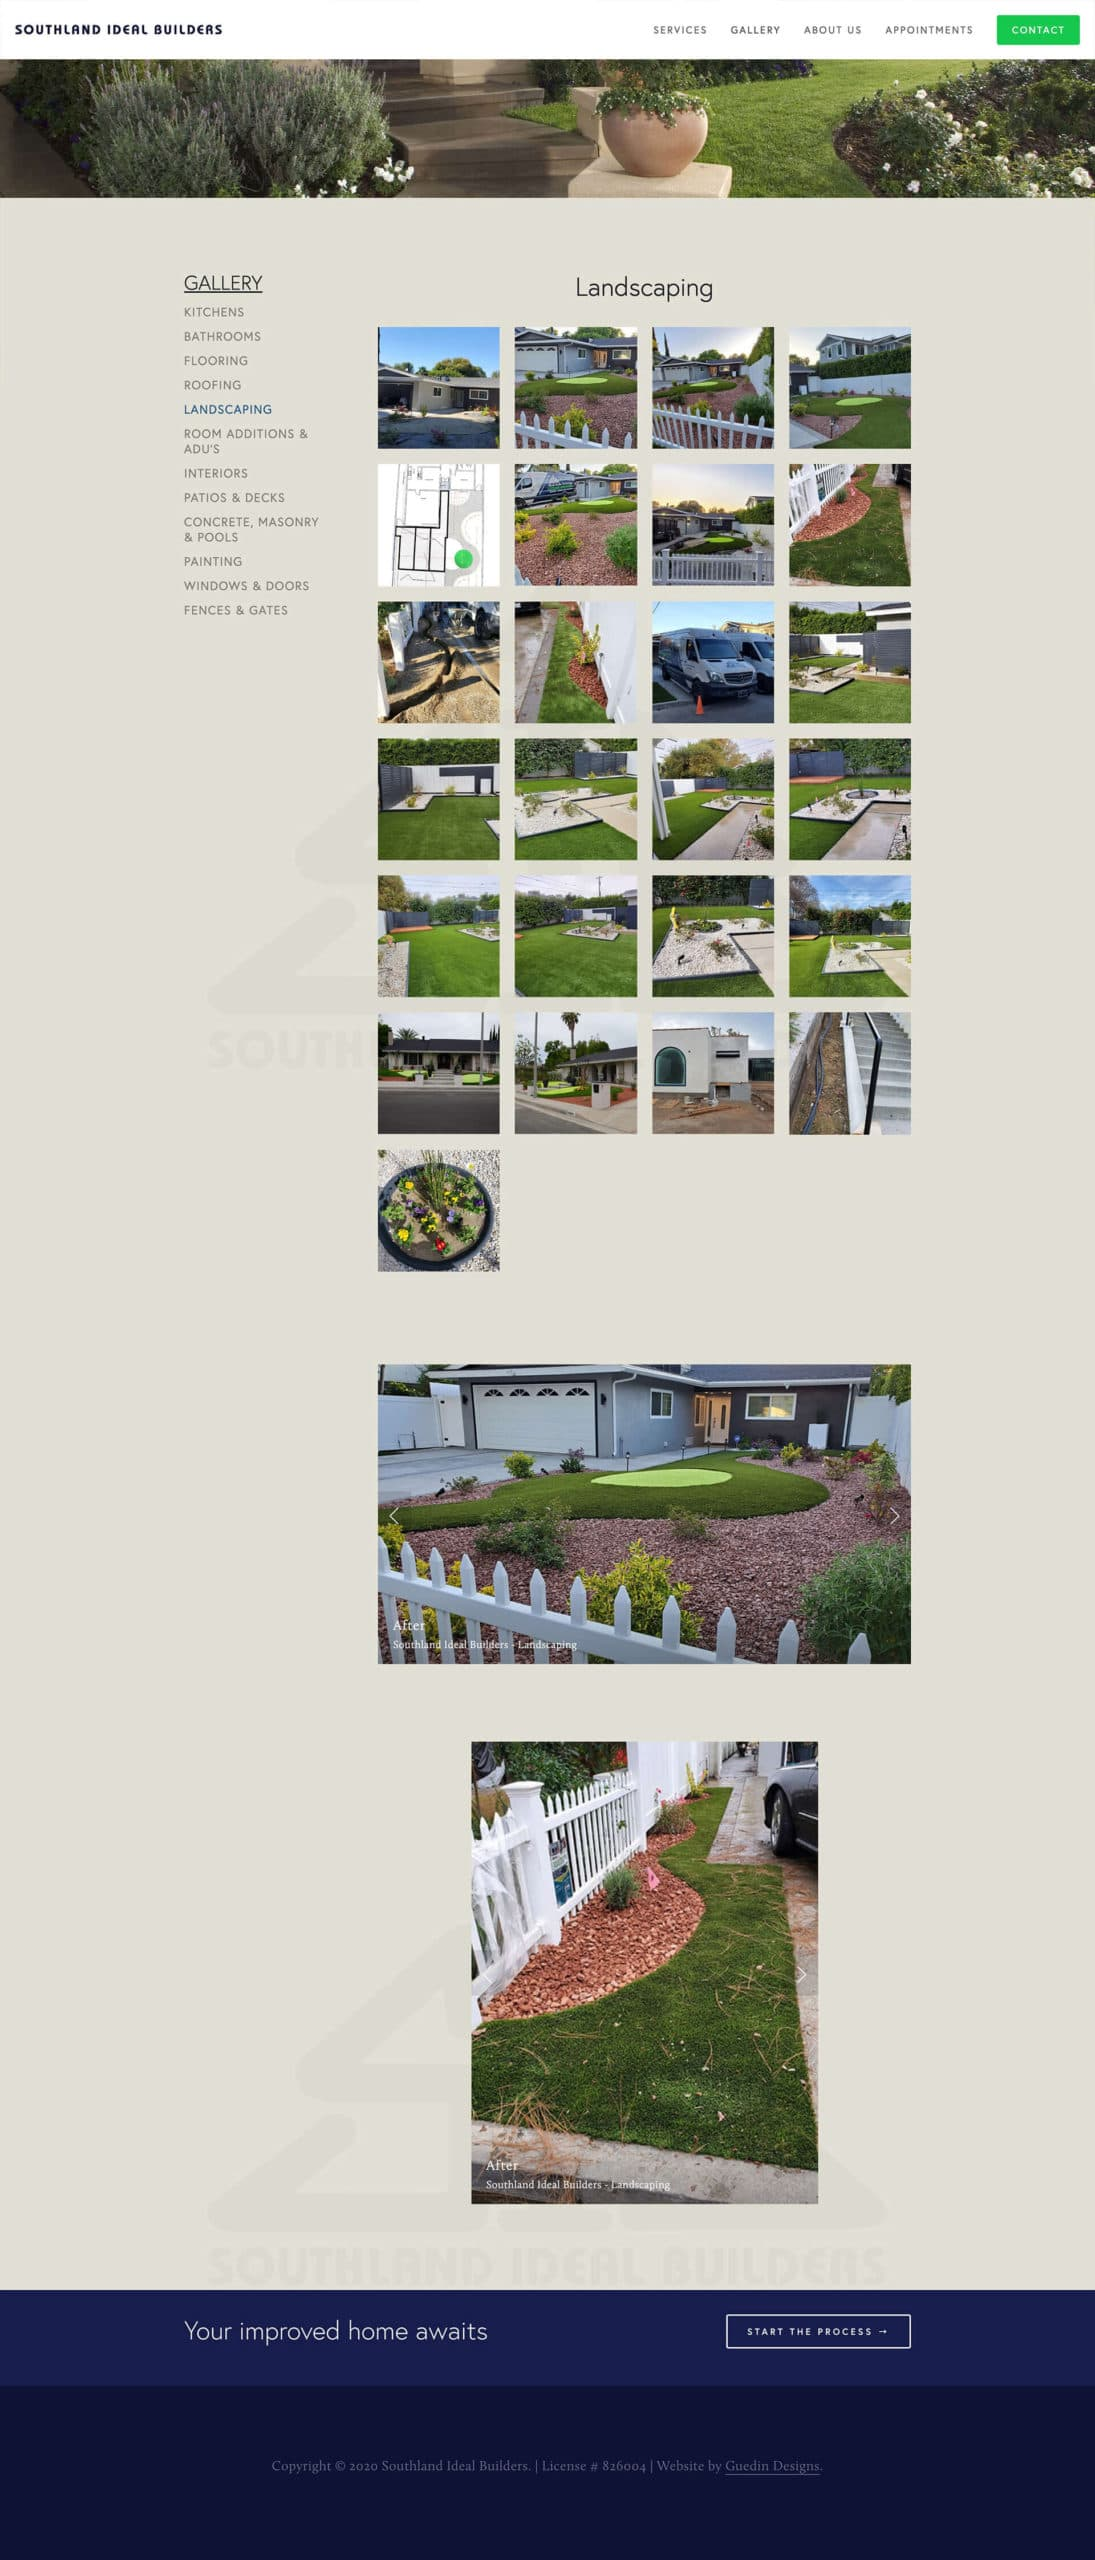 Snapshot of Southland Ideal Builders landscaping gallery